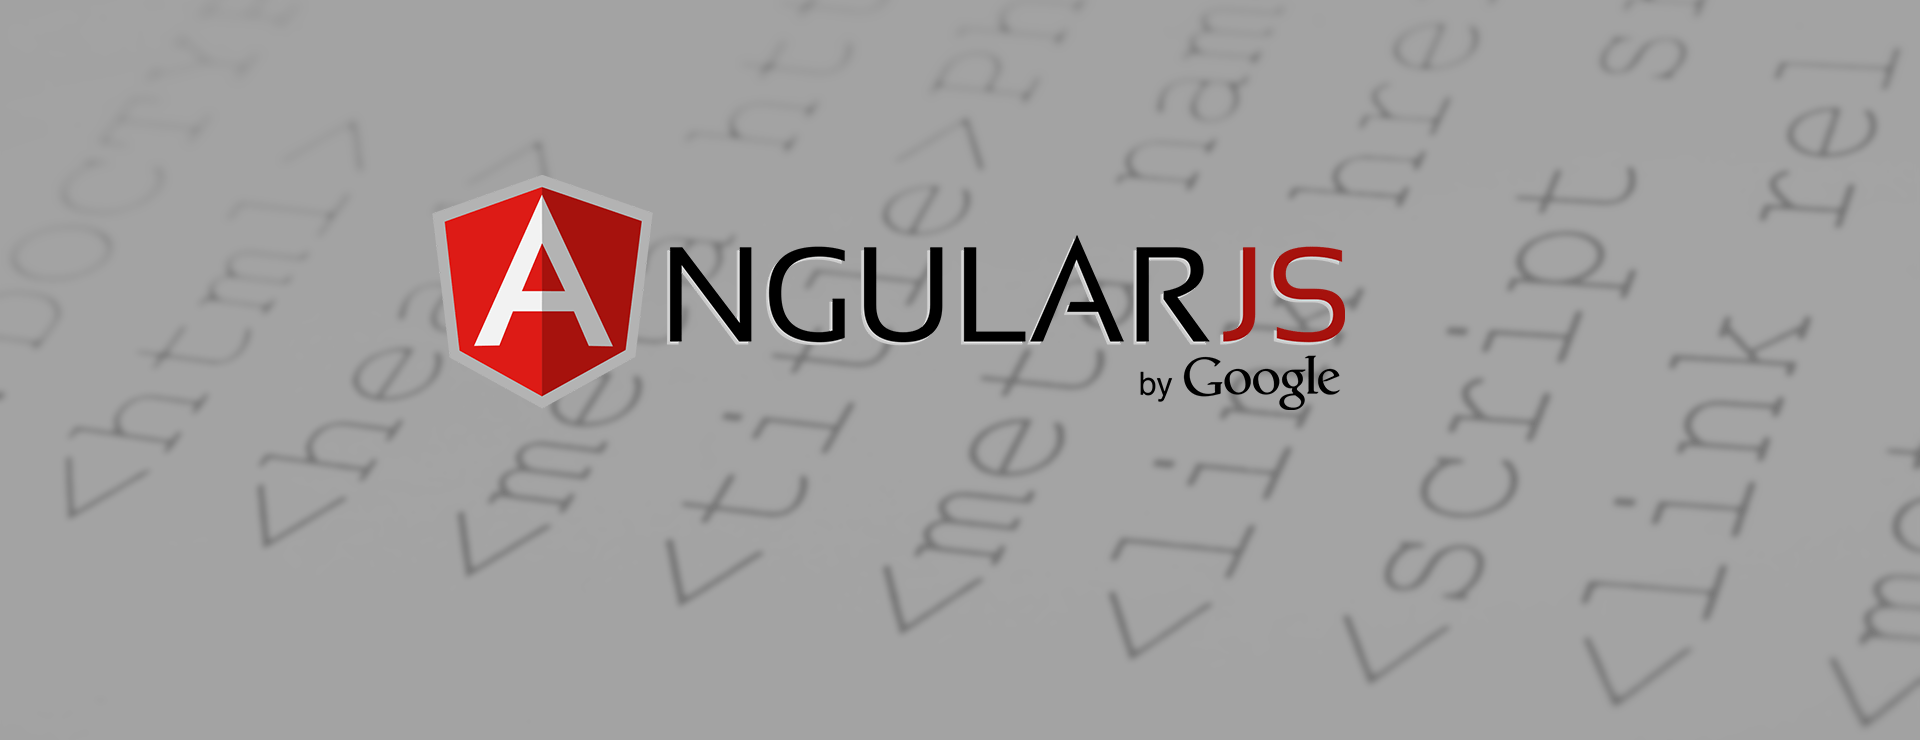 What to expect when working with Angular? Framework guide